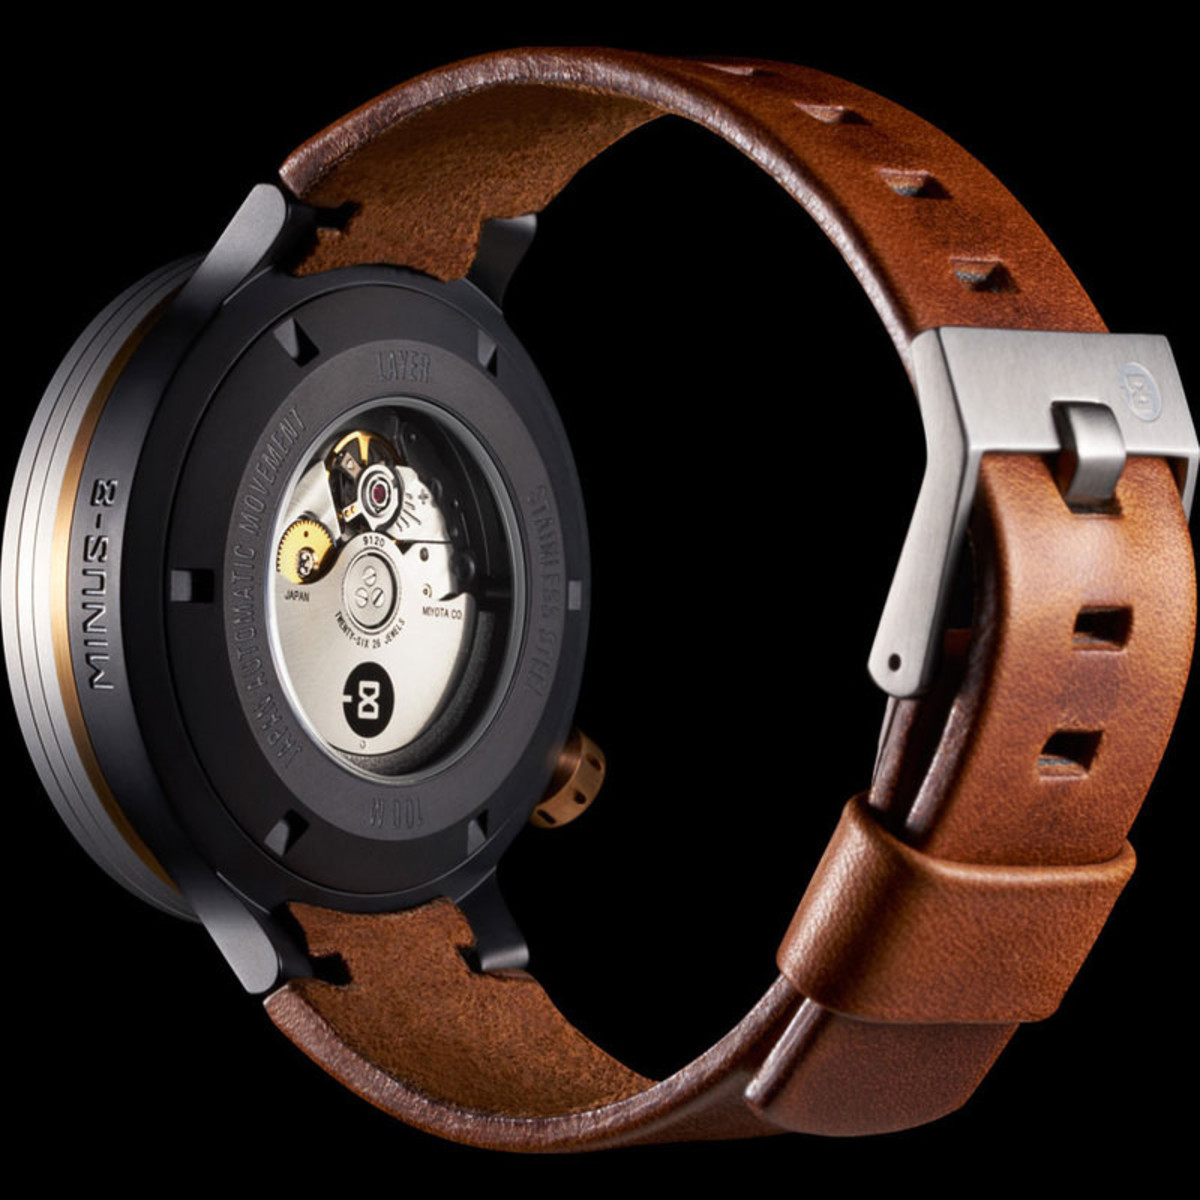 the-minus-8-layer-leather-watch-4.jpg